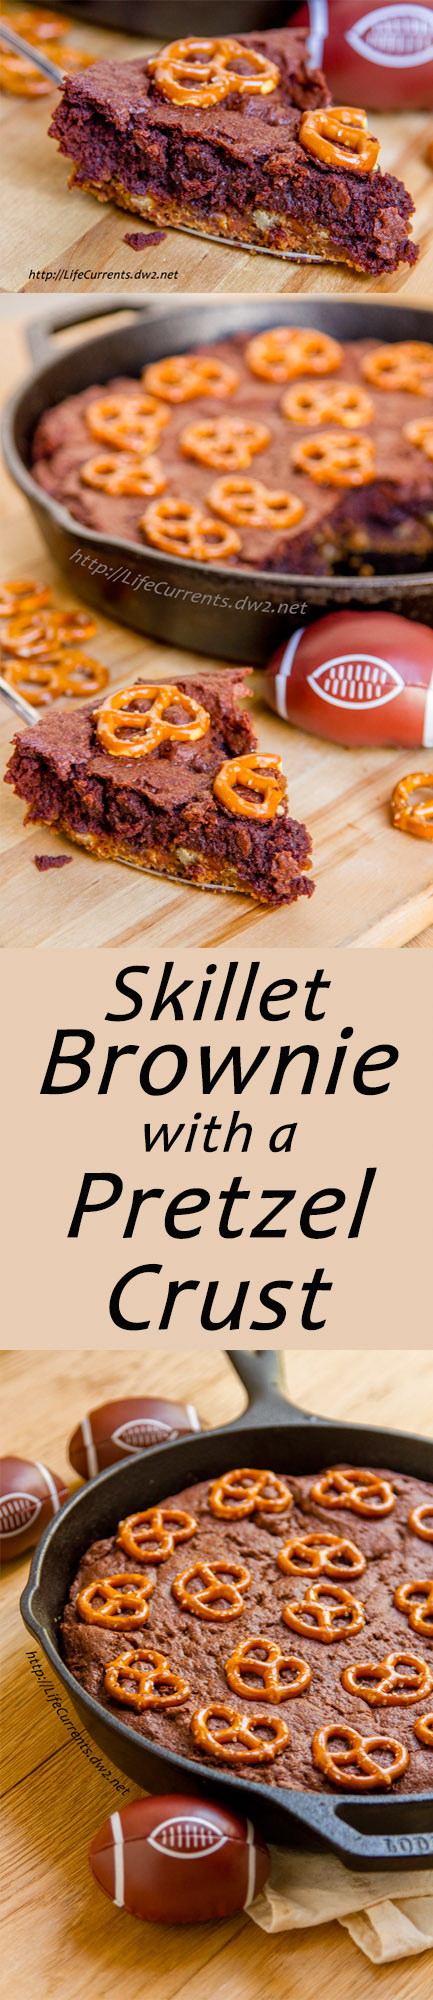 Skillet Brownies with Pretzel Crust